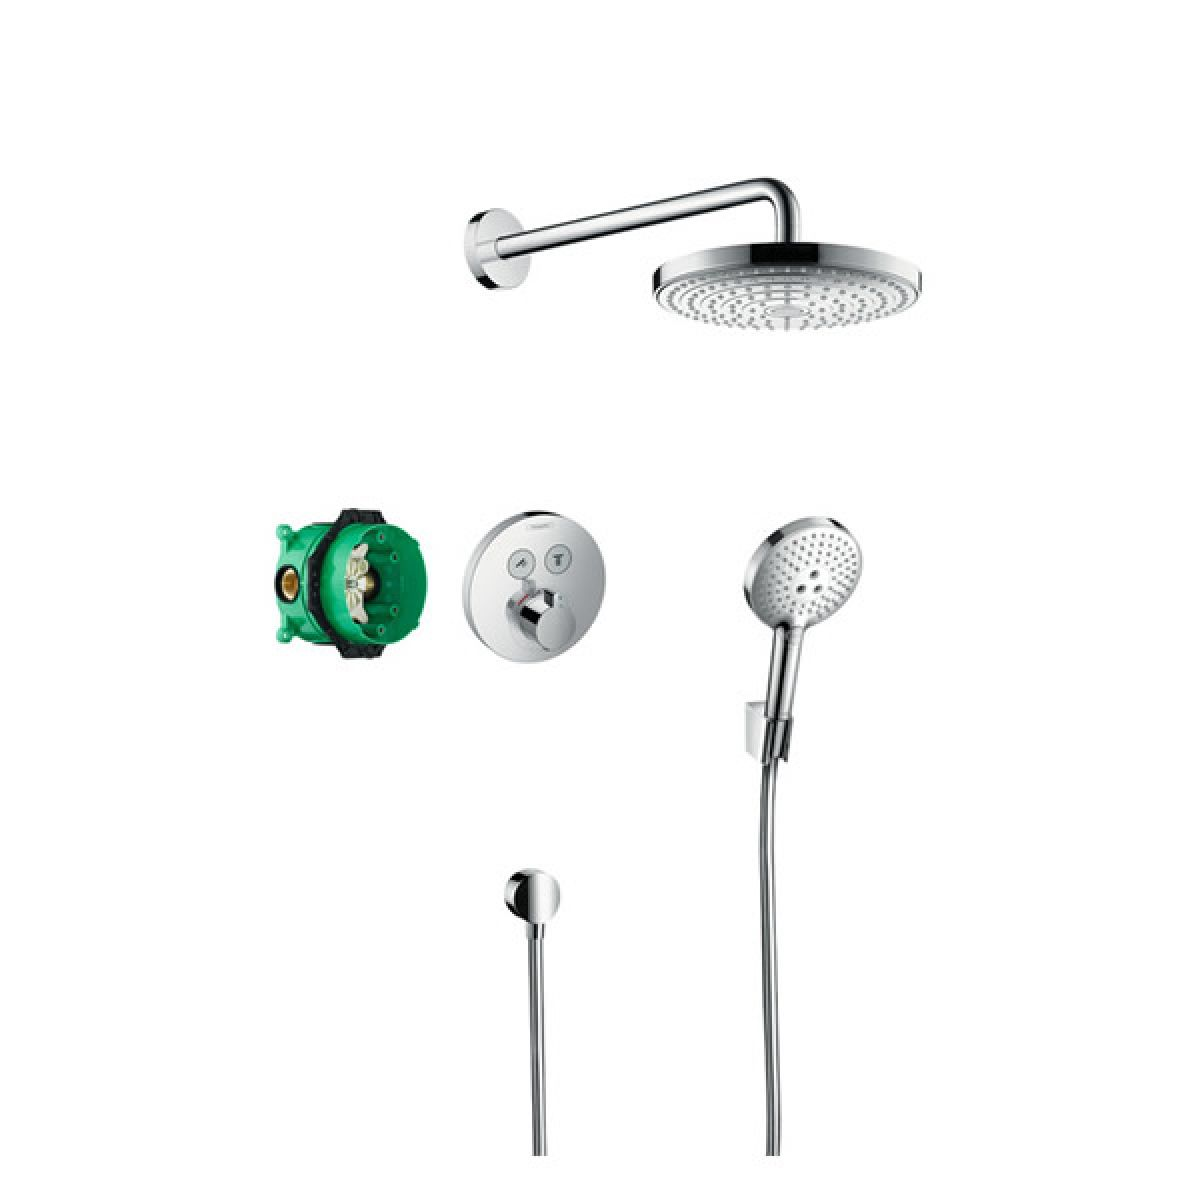 Hansgrohe Design Raindance Select S Shower Set